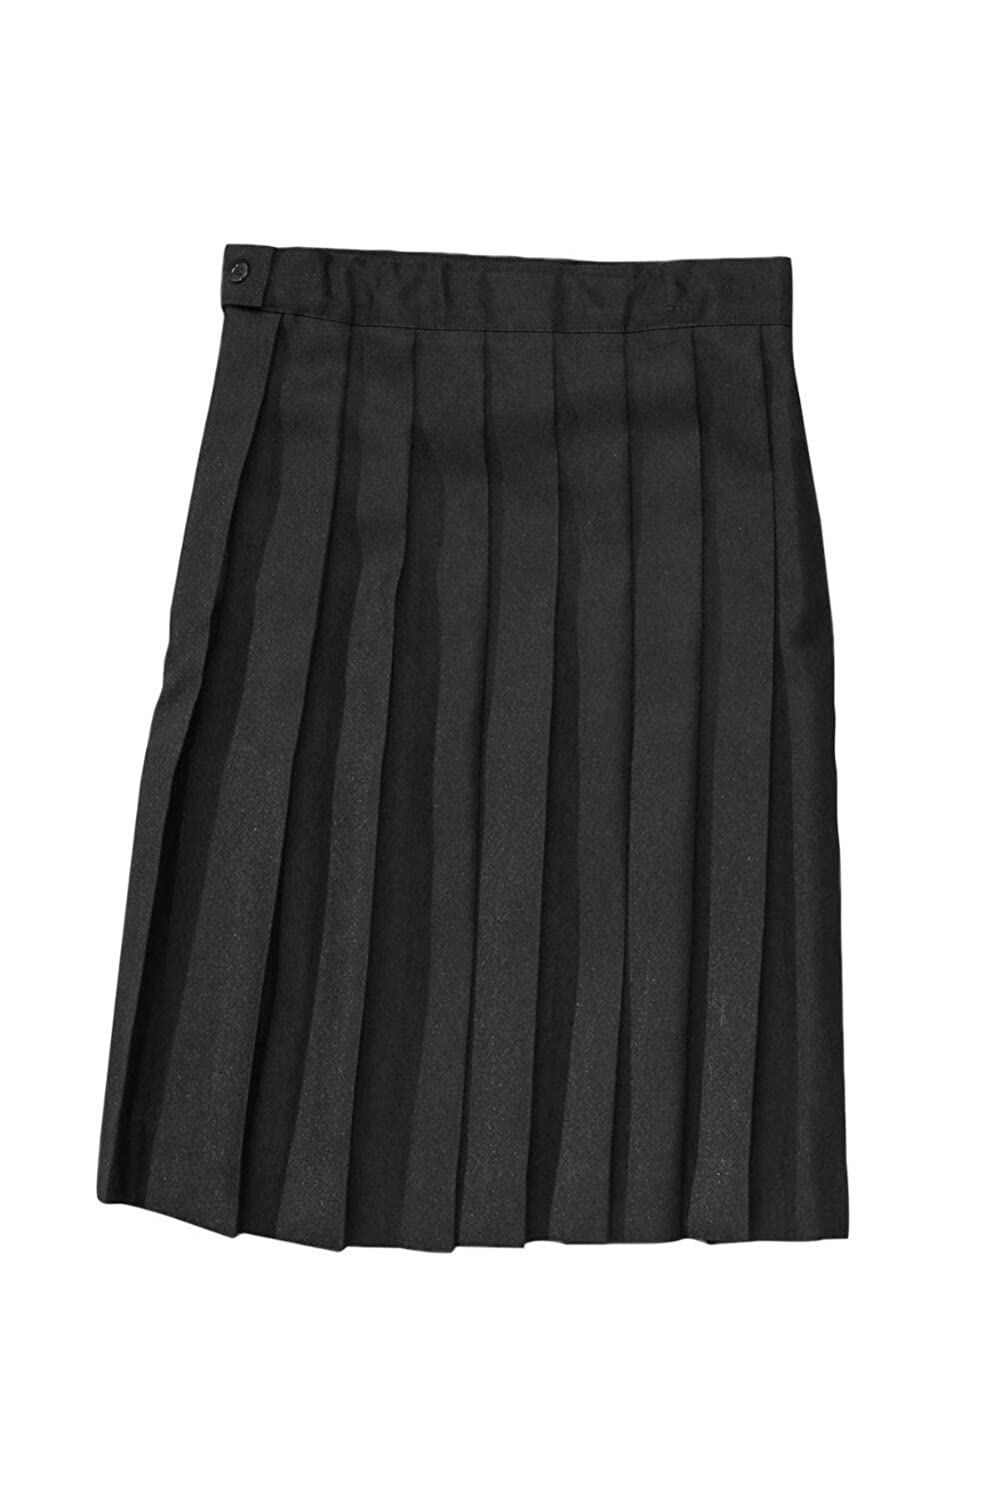 French Toast Below The Knee Pleated Skirt(Size 4-6X/7) French Toast School Uniforms 1576B